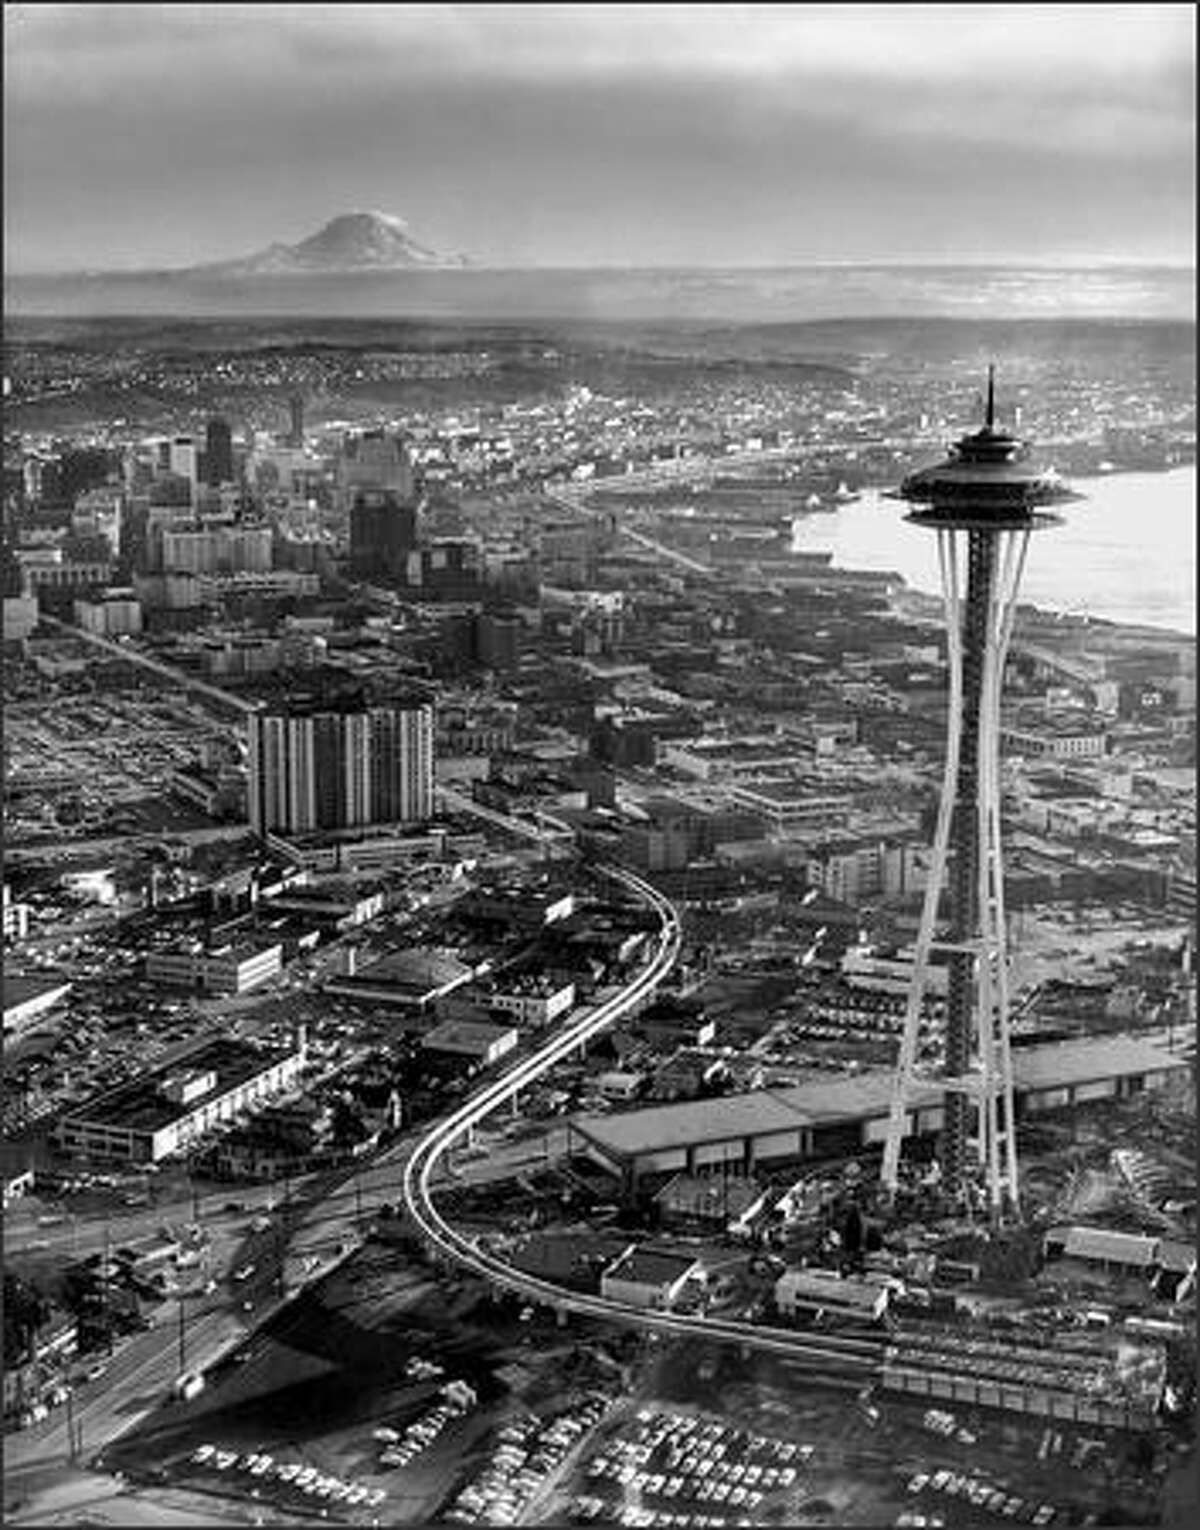 In January, 1962, construction was well underway for the Space Needle, monorail and other World's Fair projects as Mount Rainier watches over Seattle. (Seattle Post-Intelligencer photo)